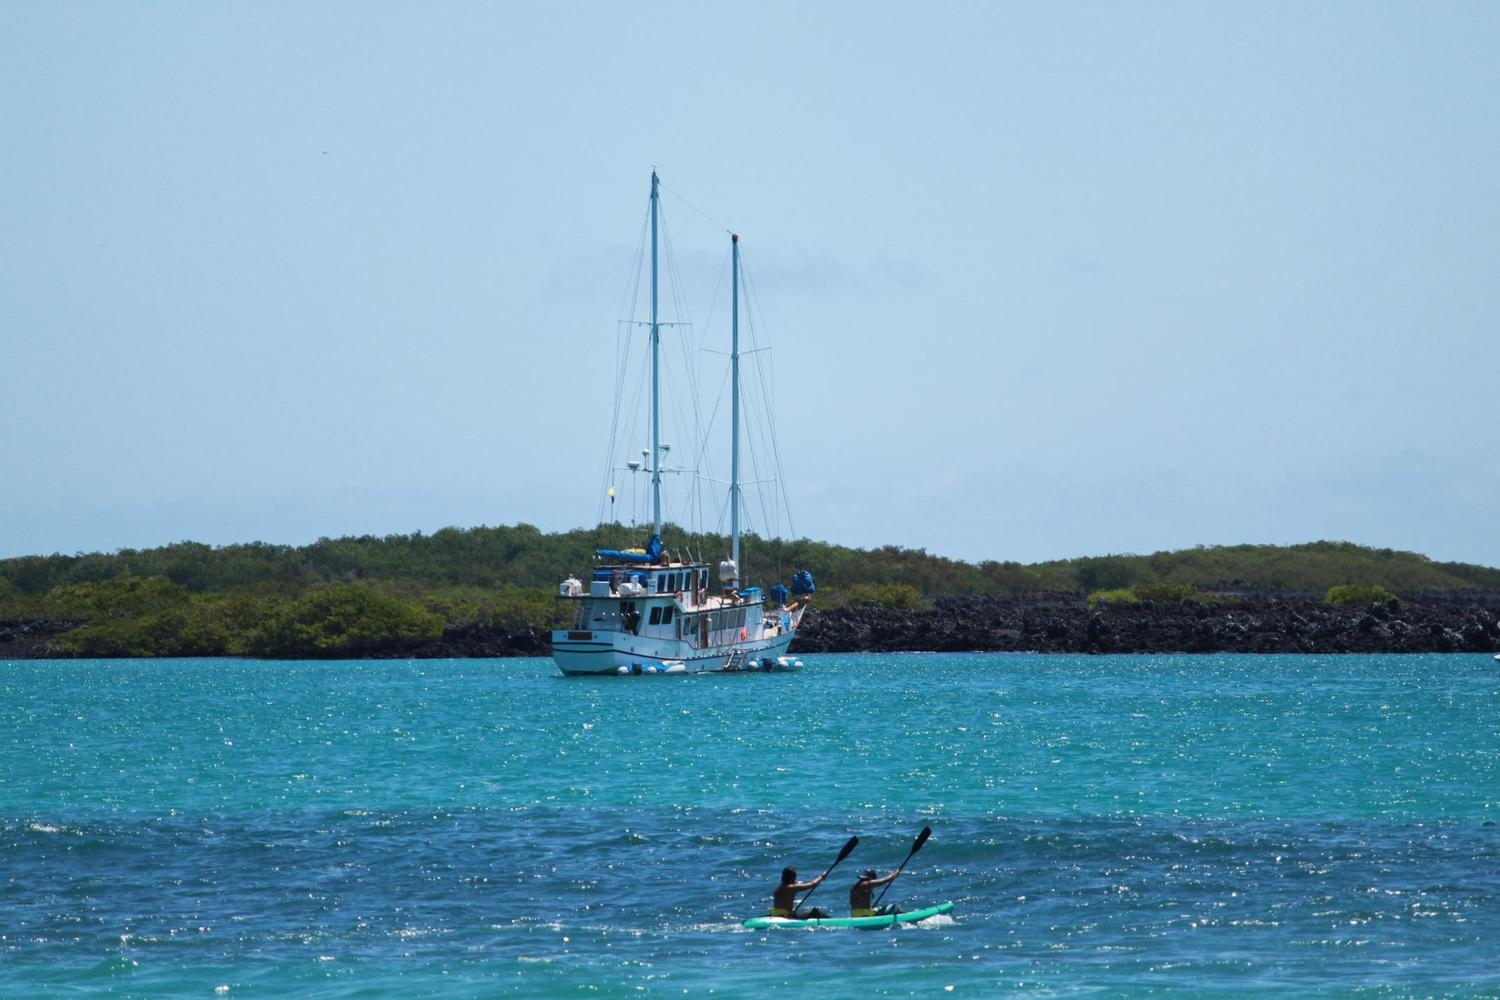 Paddling past the yacht Cachalote, Galapagos